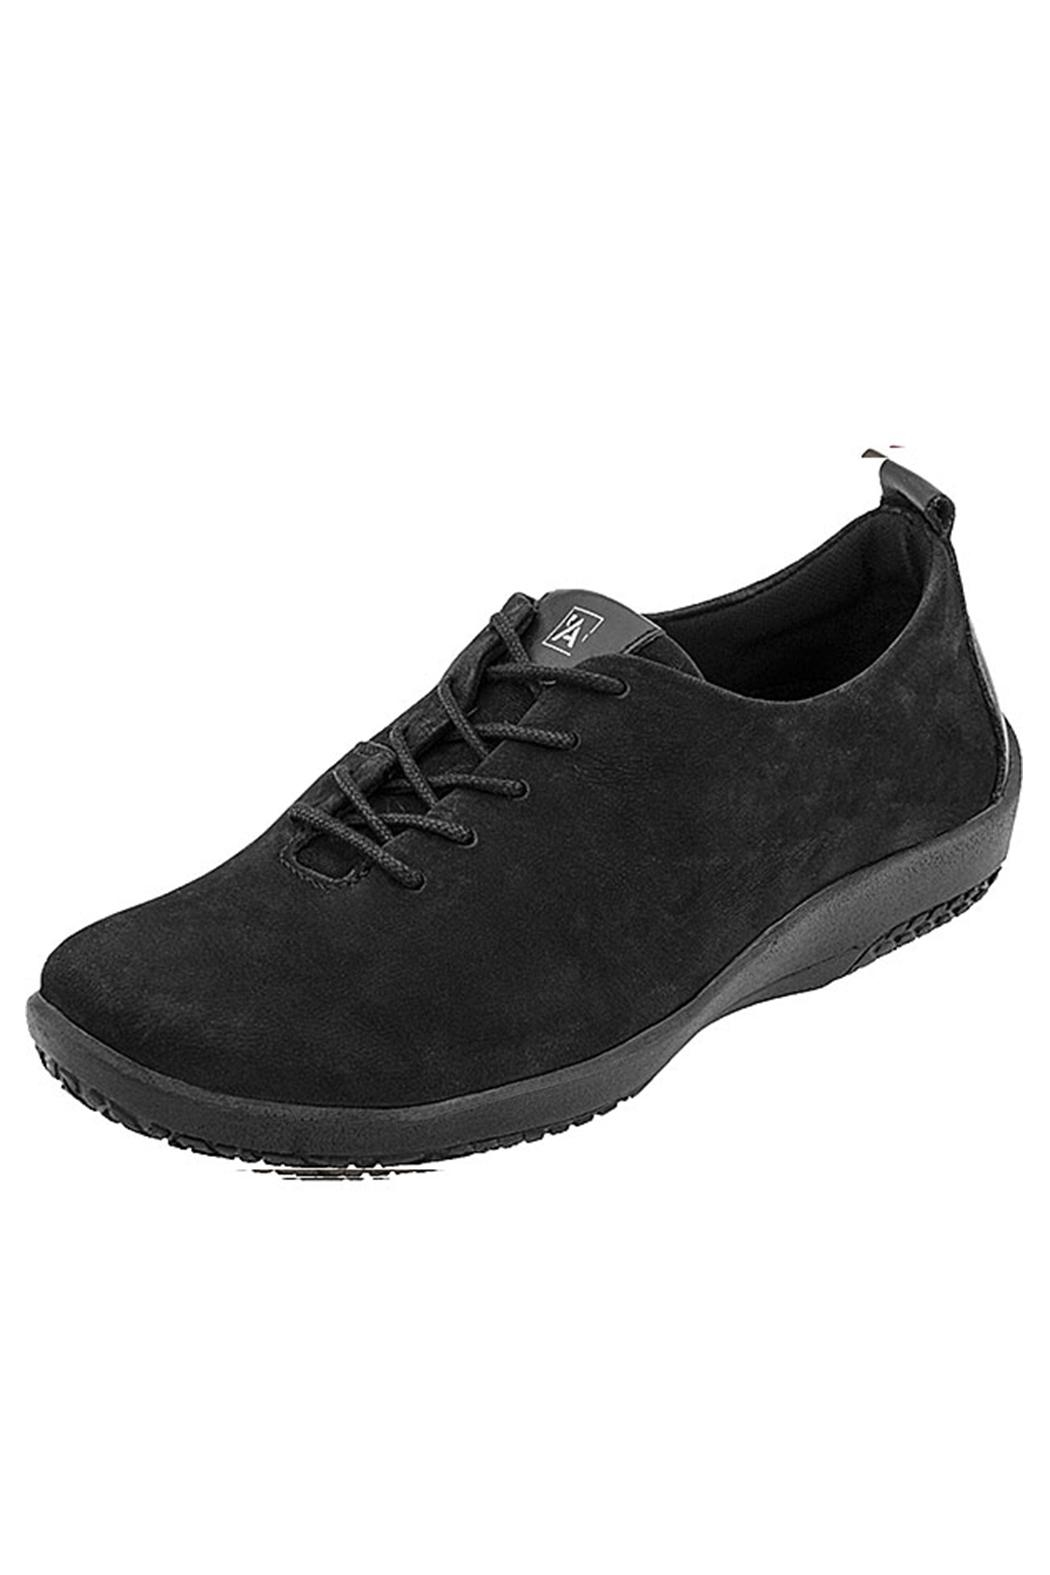 Arcopedico Francesca Oxford Shoes - Front Cropped Image